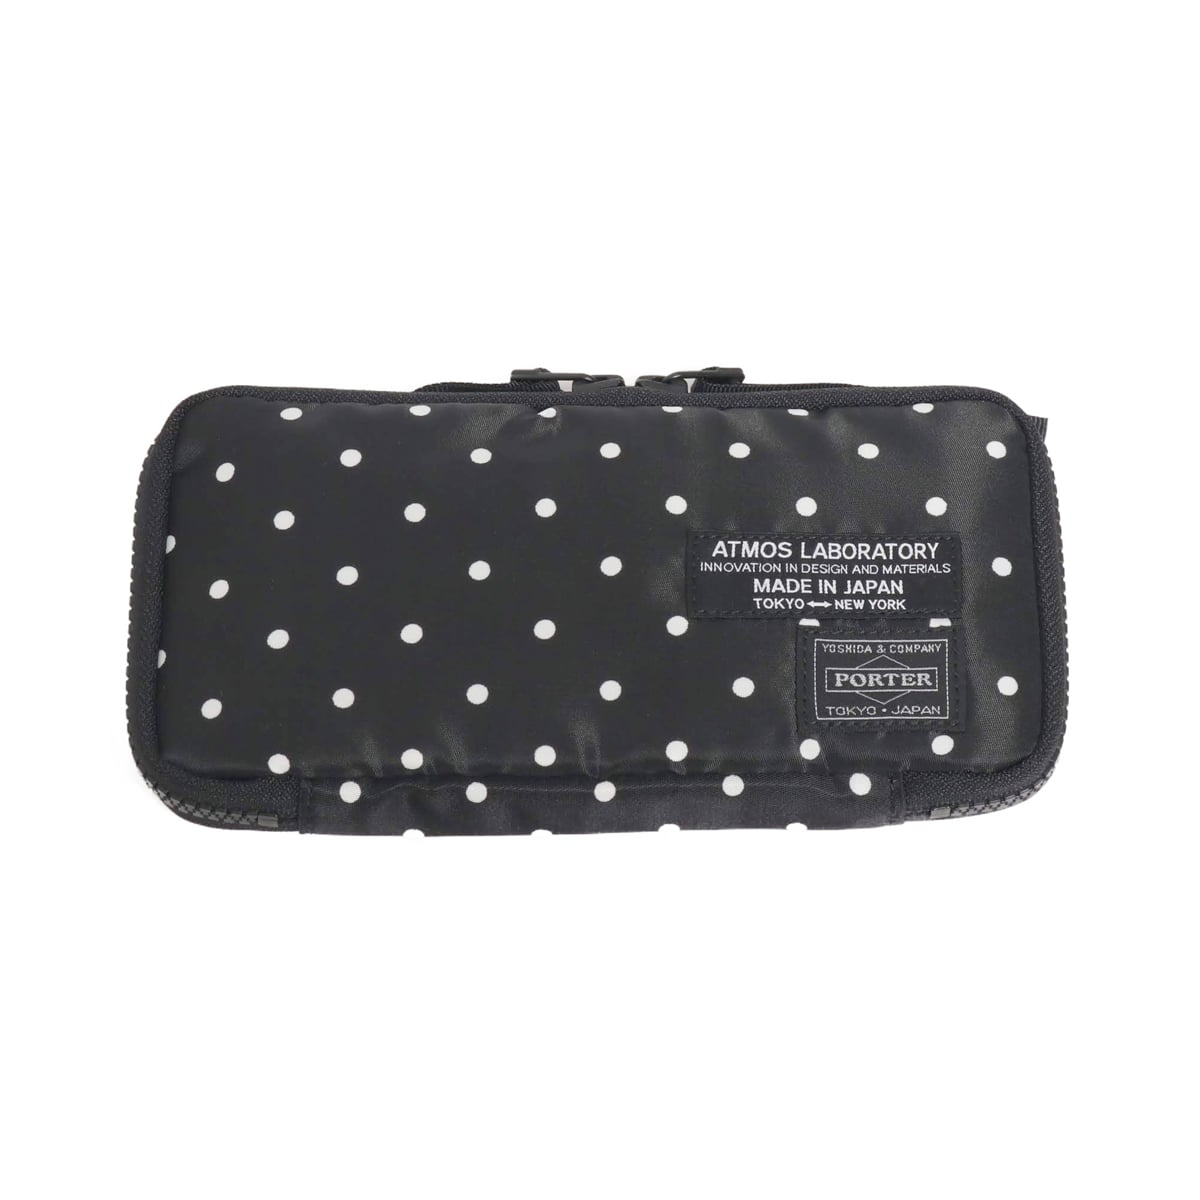 PORTER x ATMOS LAB DOT WALLET L BLACK 19SU-S_photo_large